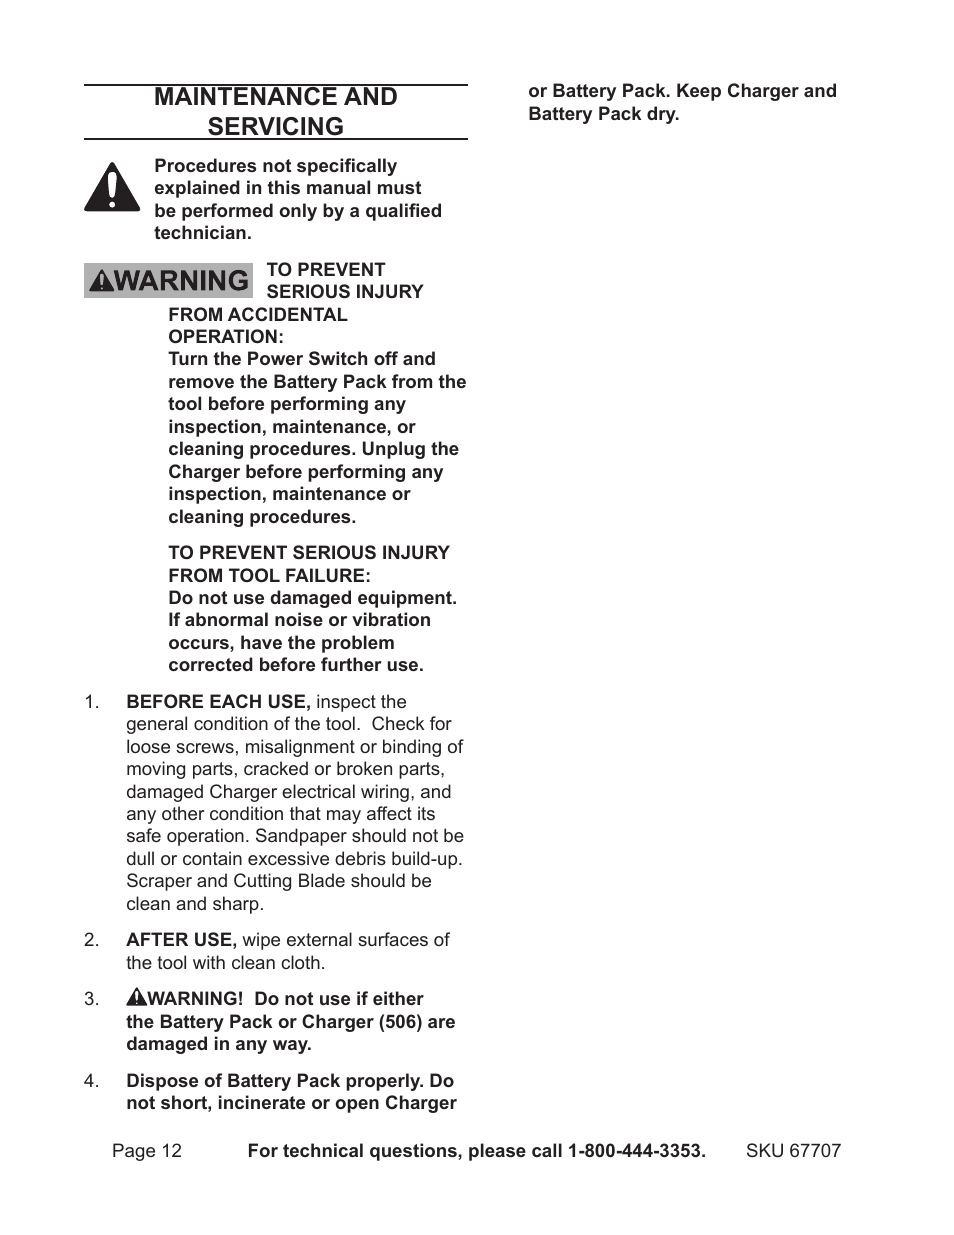 hight resolution of maintenance and servicing chicago electric 12v lithium ion multifunction tool 67707 user manual page 12 15